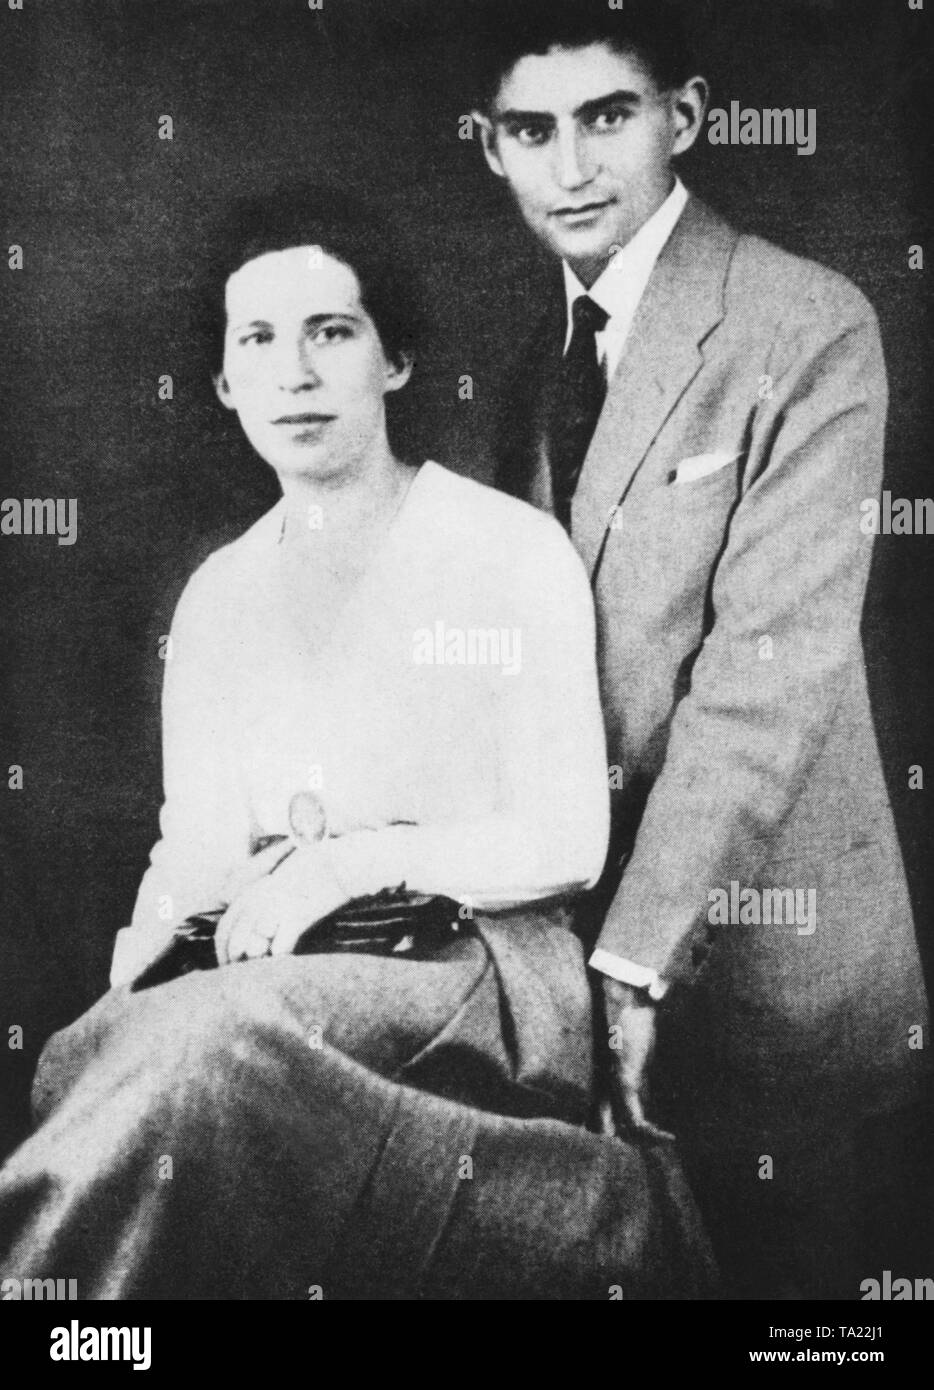 Franz Kafka and his fiancée Felice Bauer (recording undated). They got engaged two times in 1914 and in 1917. - Stock Image